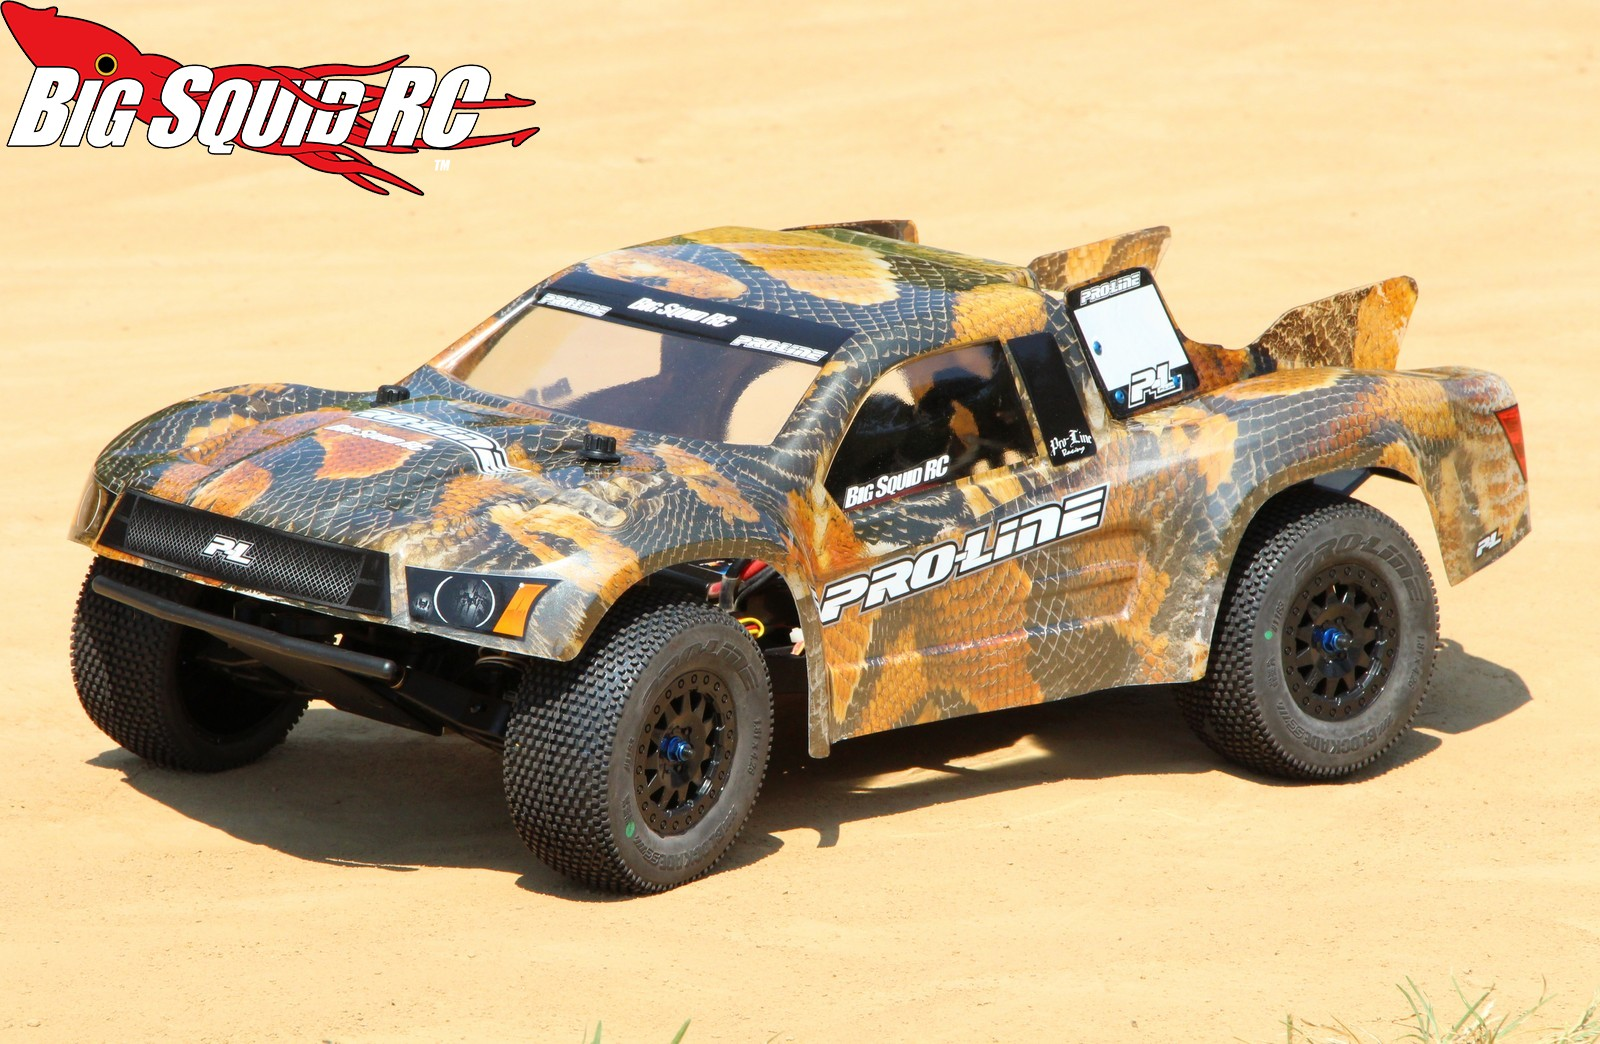 electric short course truck with Review Pro Line Pro 2 Short Course Truck Kit on Dc1e Cb60bu Dc1 Trail Crawler Rtr Blue P 75878 moreover Brakes in addition Torment 1 10 Waterproof Short Course Truck Rtr Black Orange Ecx4000s also Forklift in addition Traxxas Rc Cars Trucks 79998259.